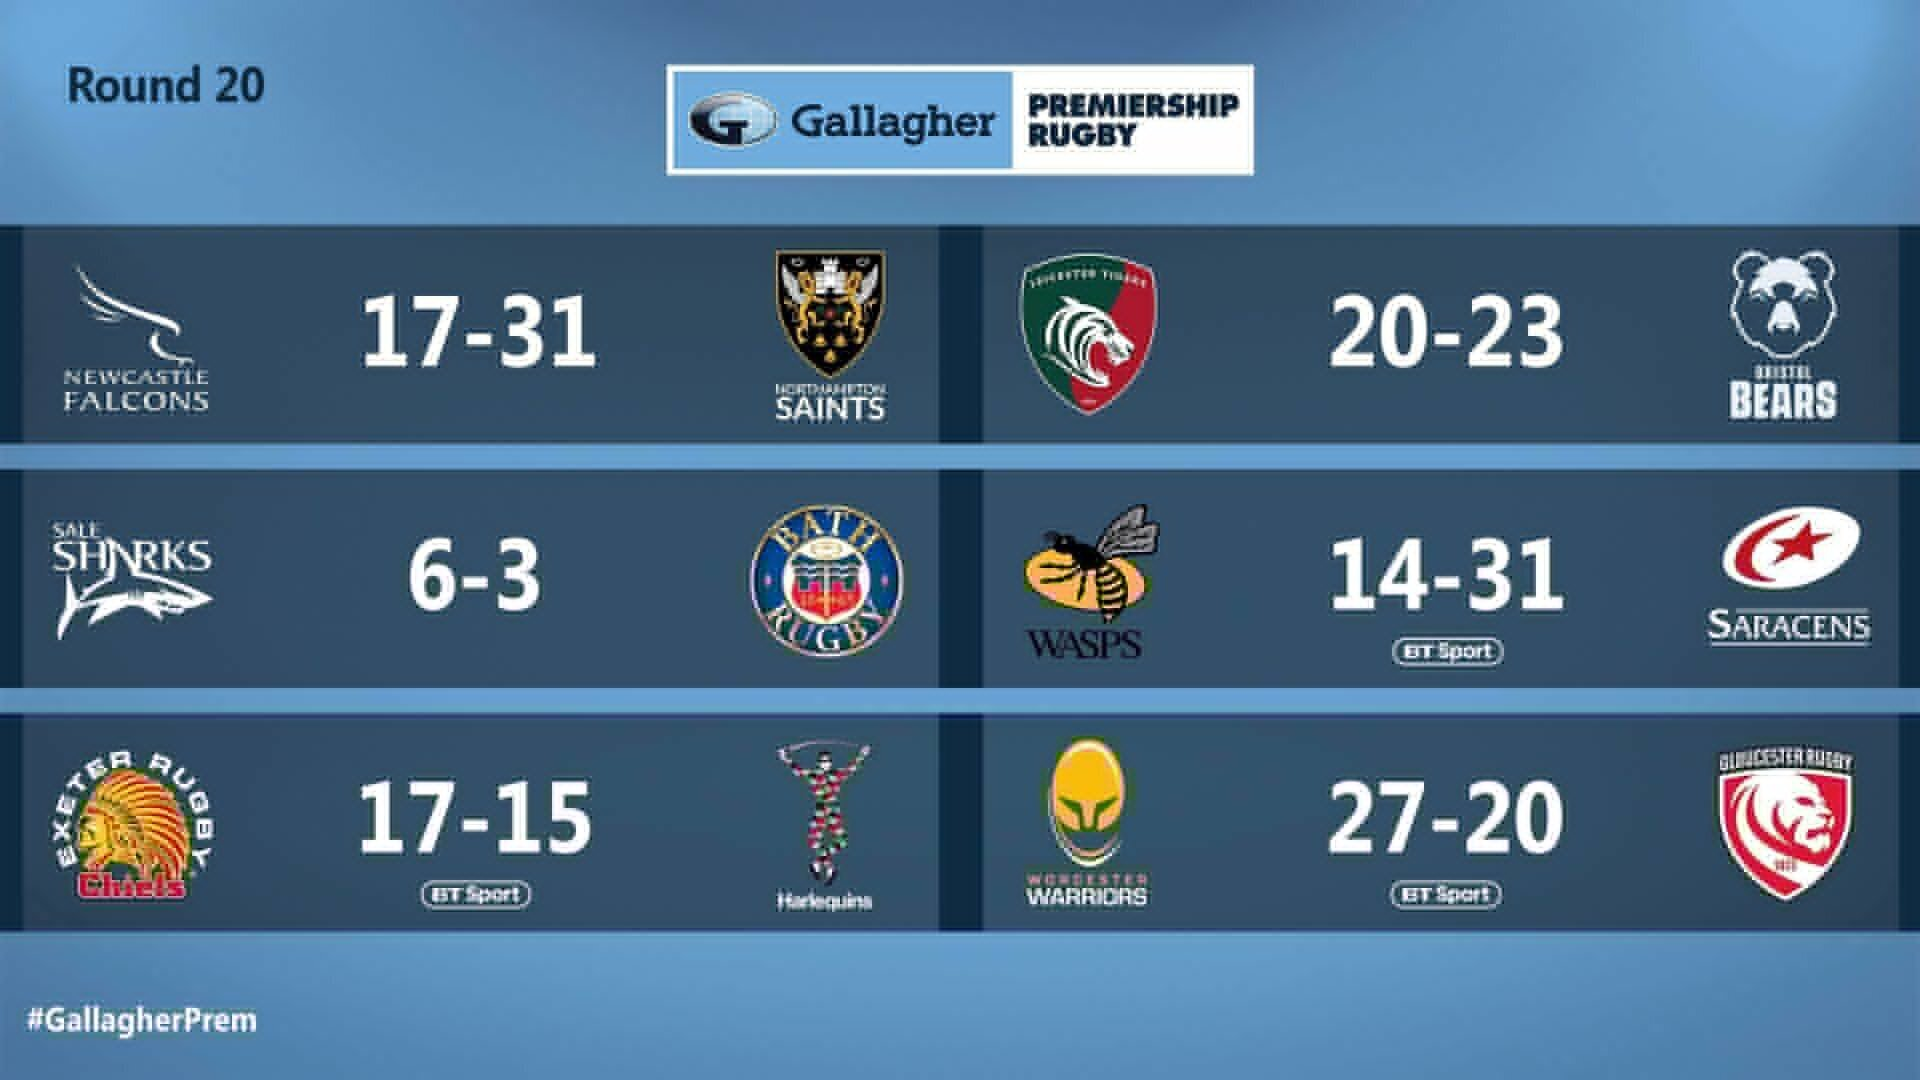 Premiership results for round 20